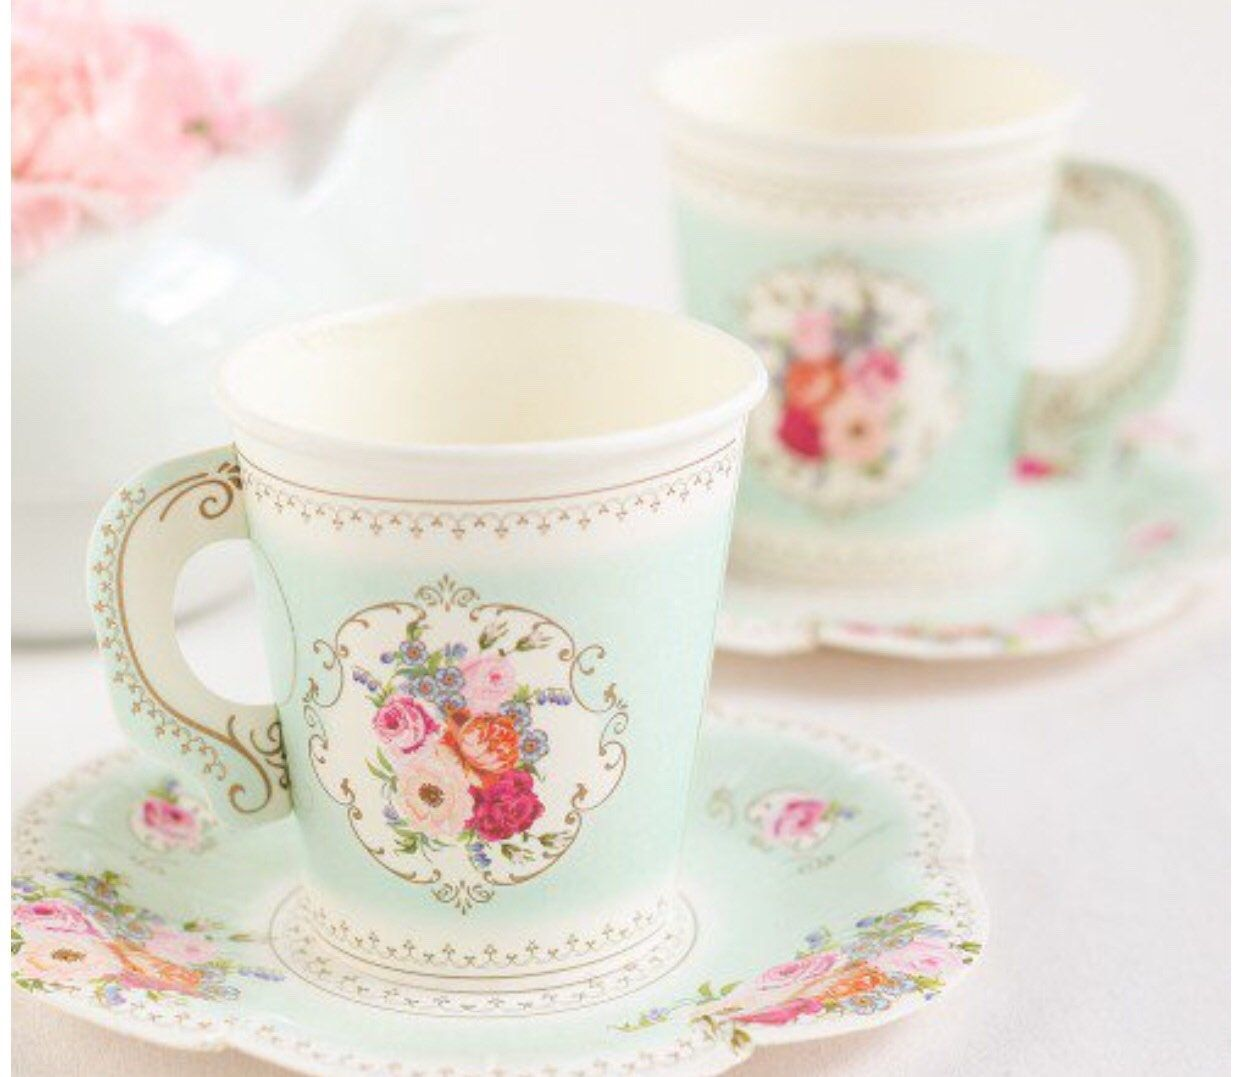 royal wedding disposable tea cups with saucers tea party https